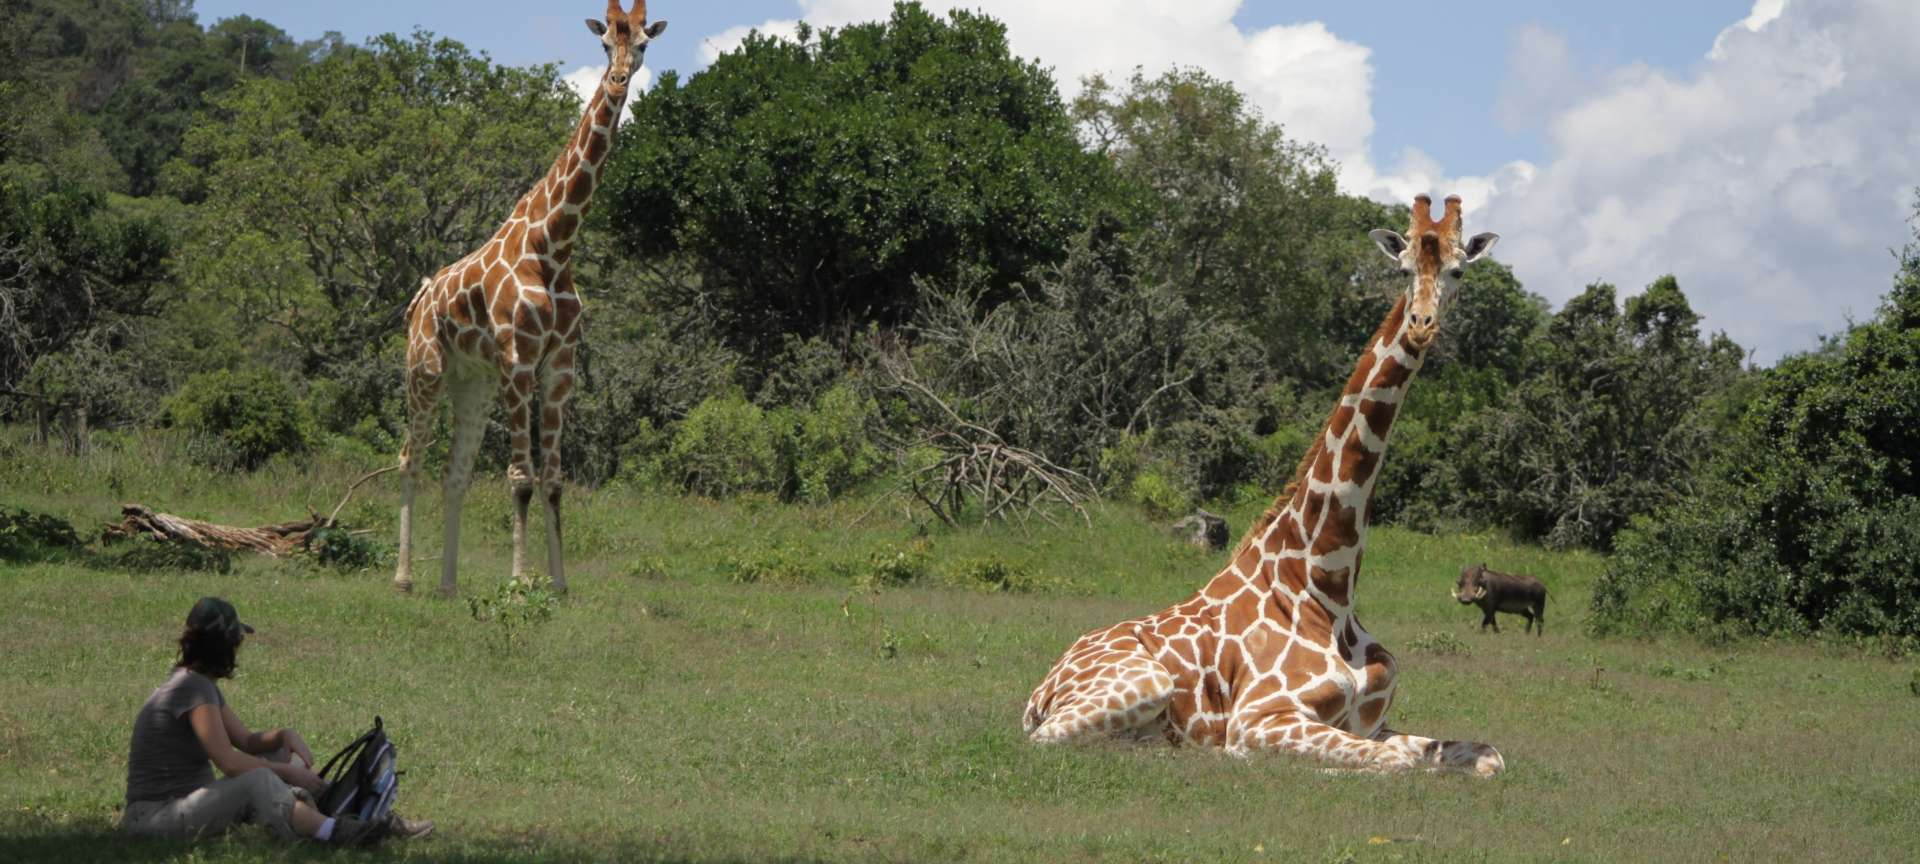 Aberdare National Park - Africa Wildlife Safaris